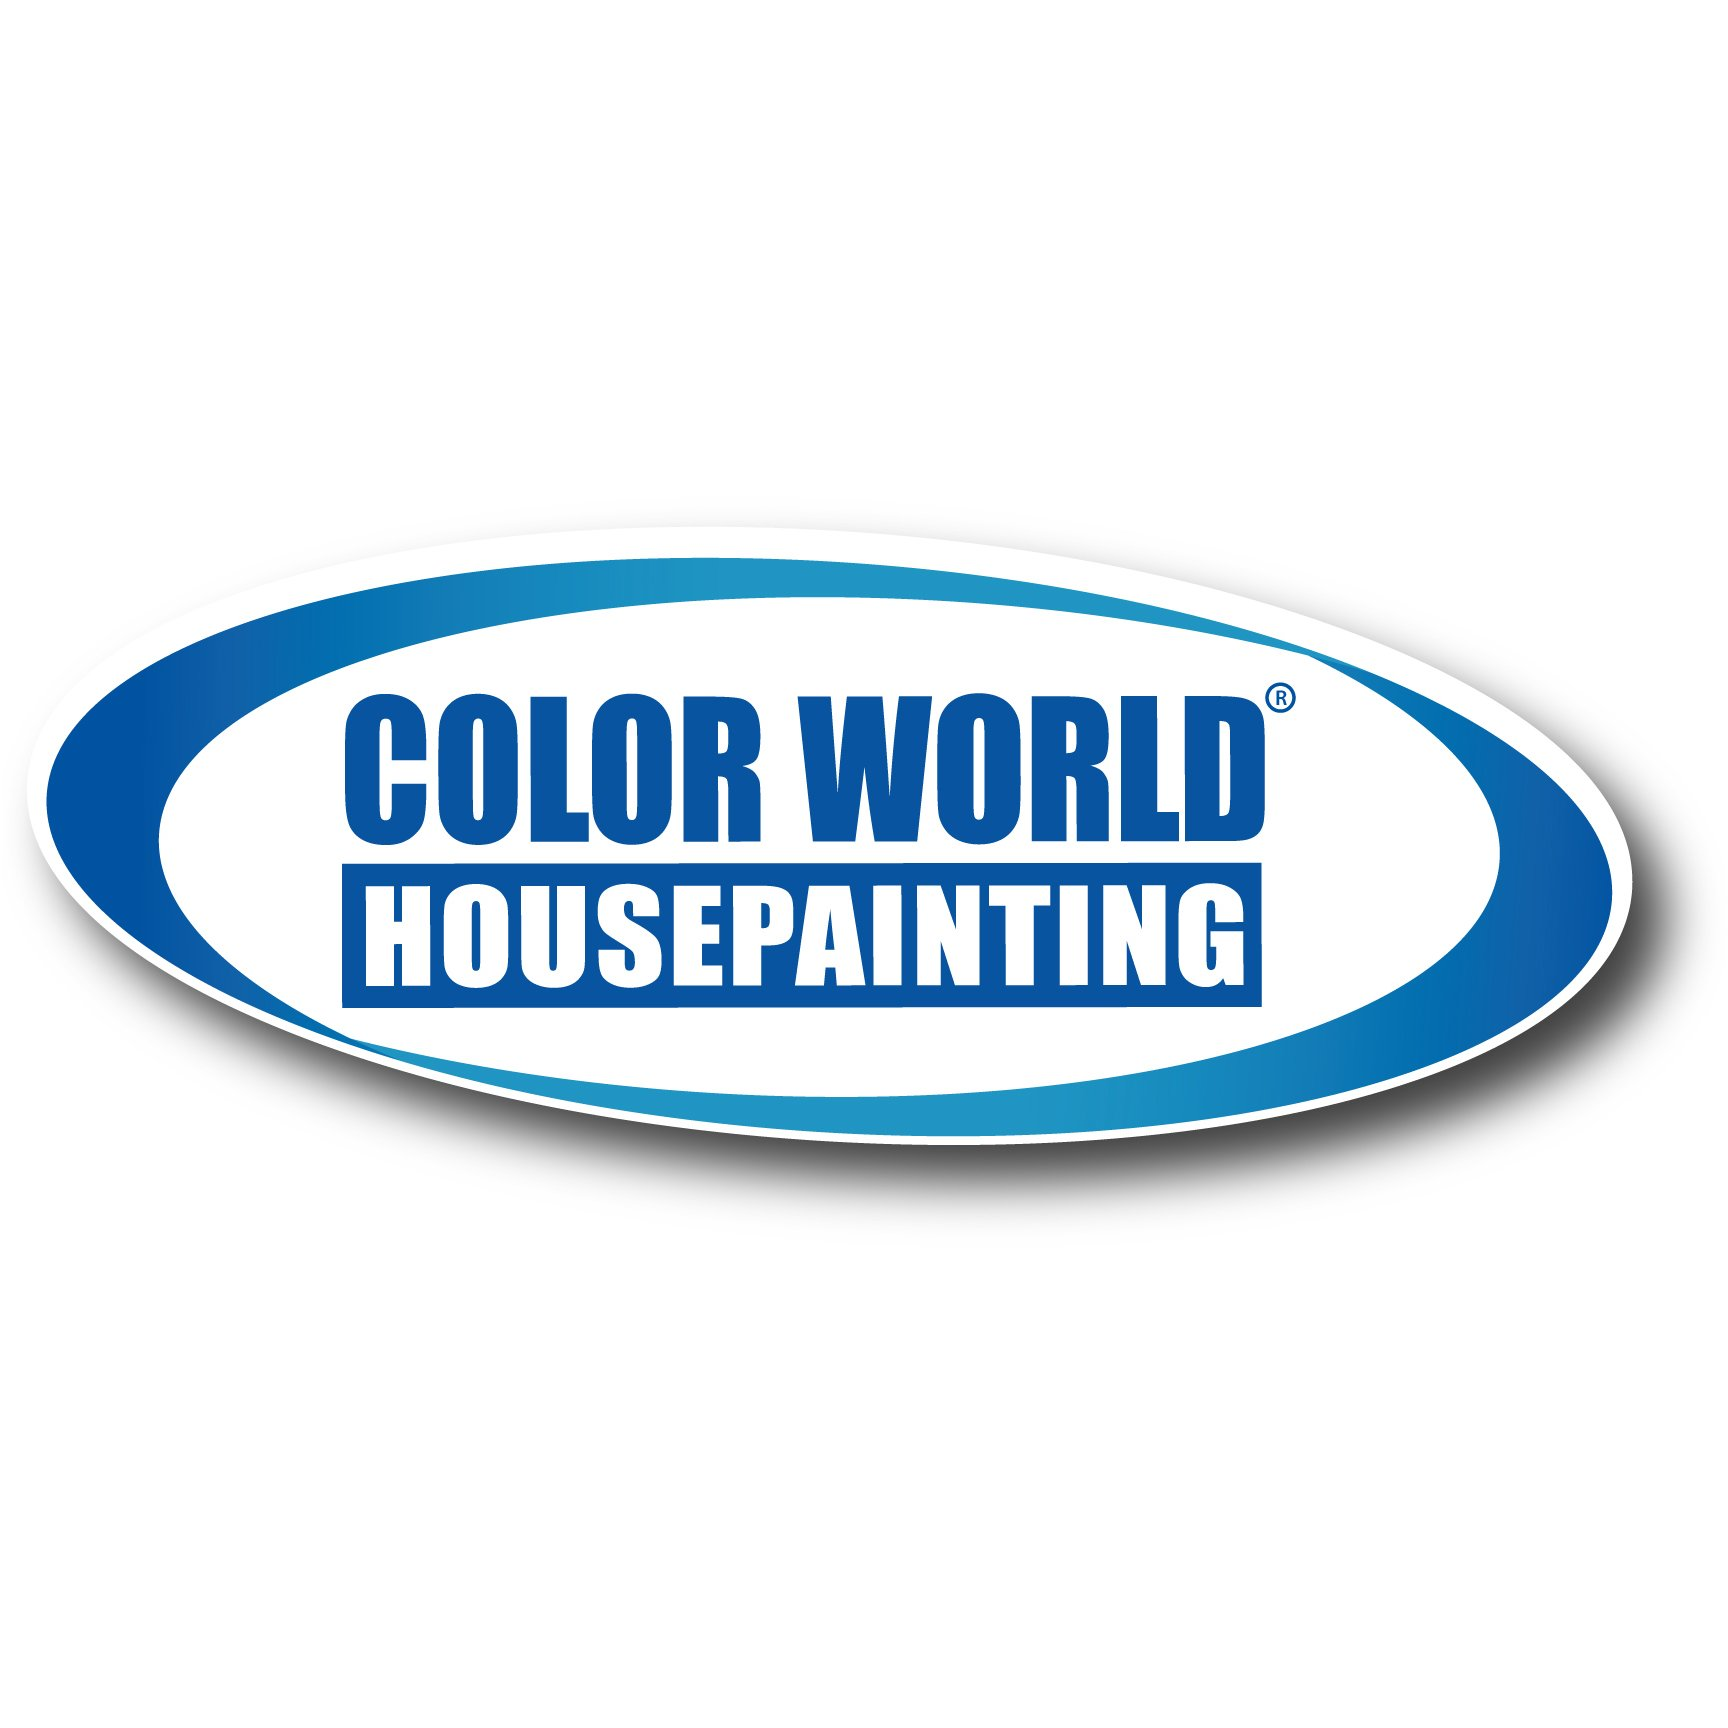 Color World House Painting